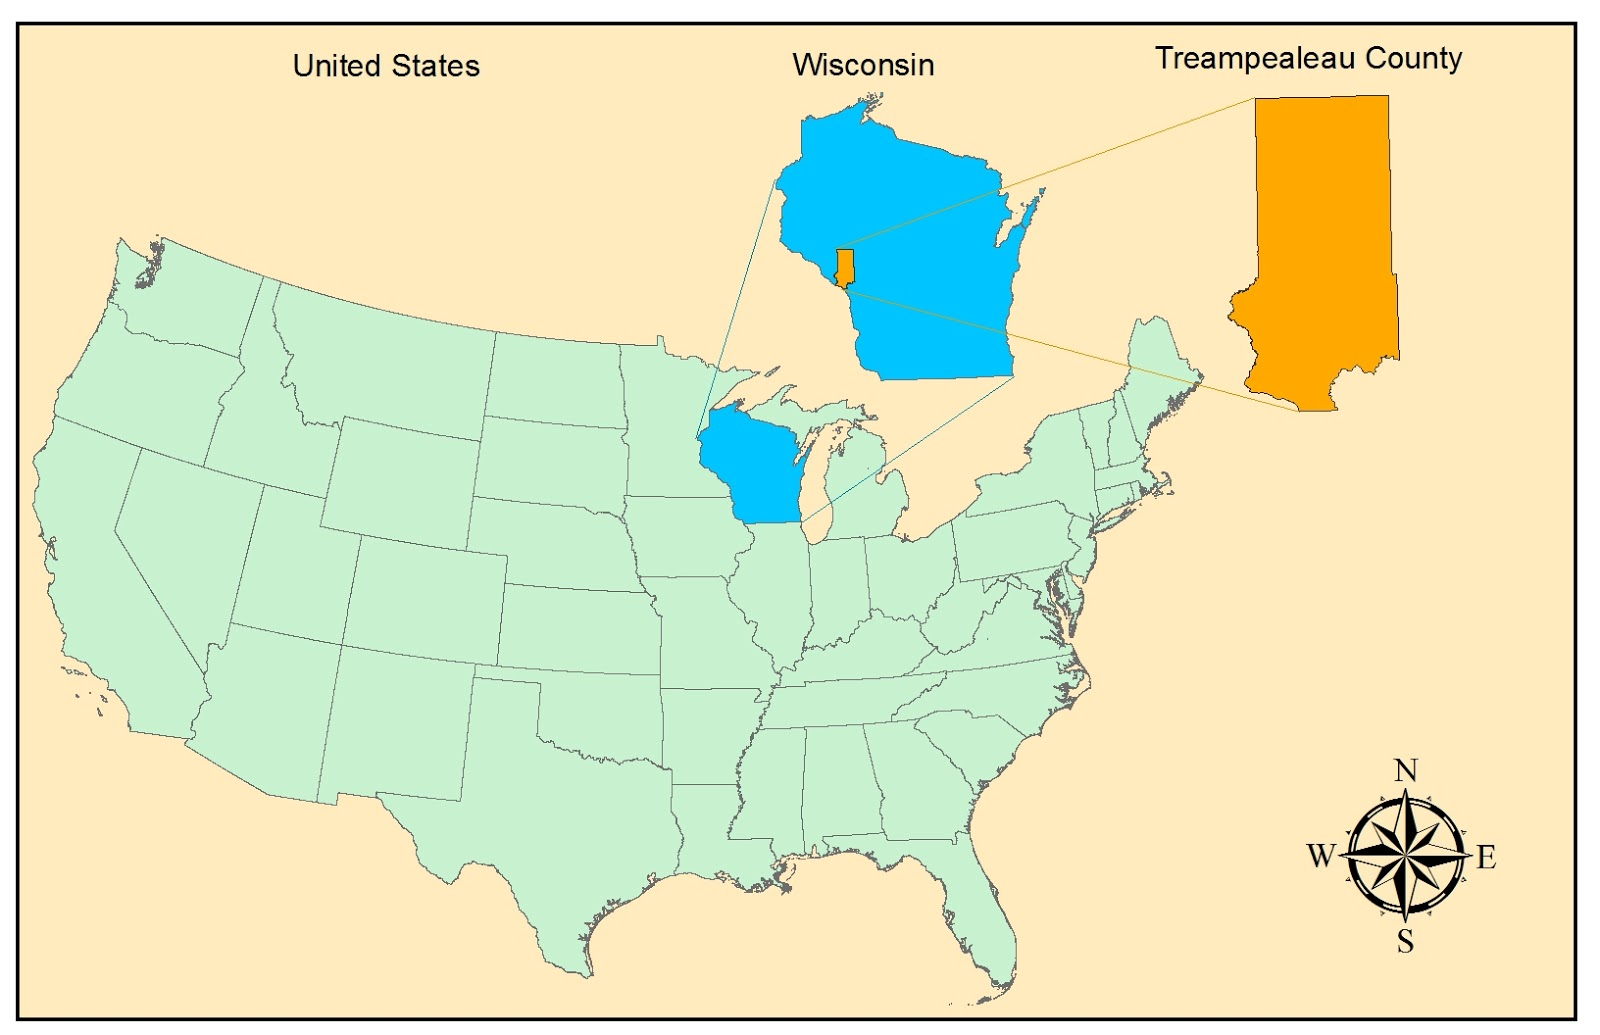 the location of trempealeau county wisconsin usa the west central portion of wisconsin has become populated with sand mining operations in recent years